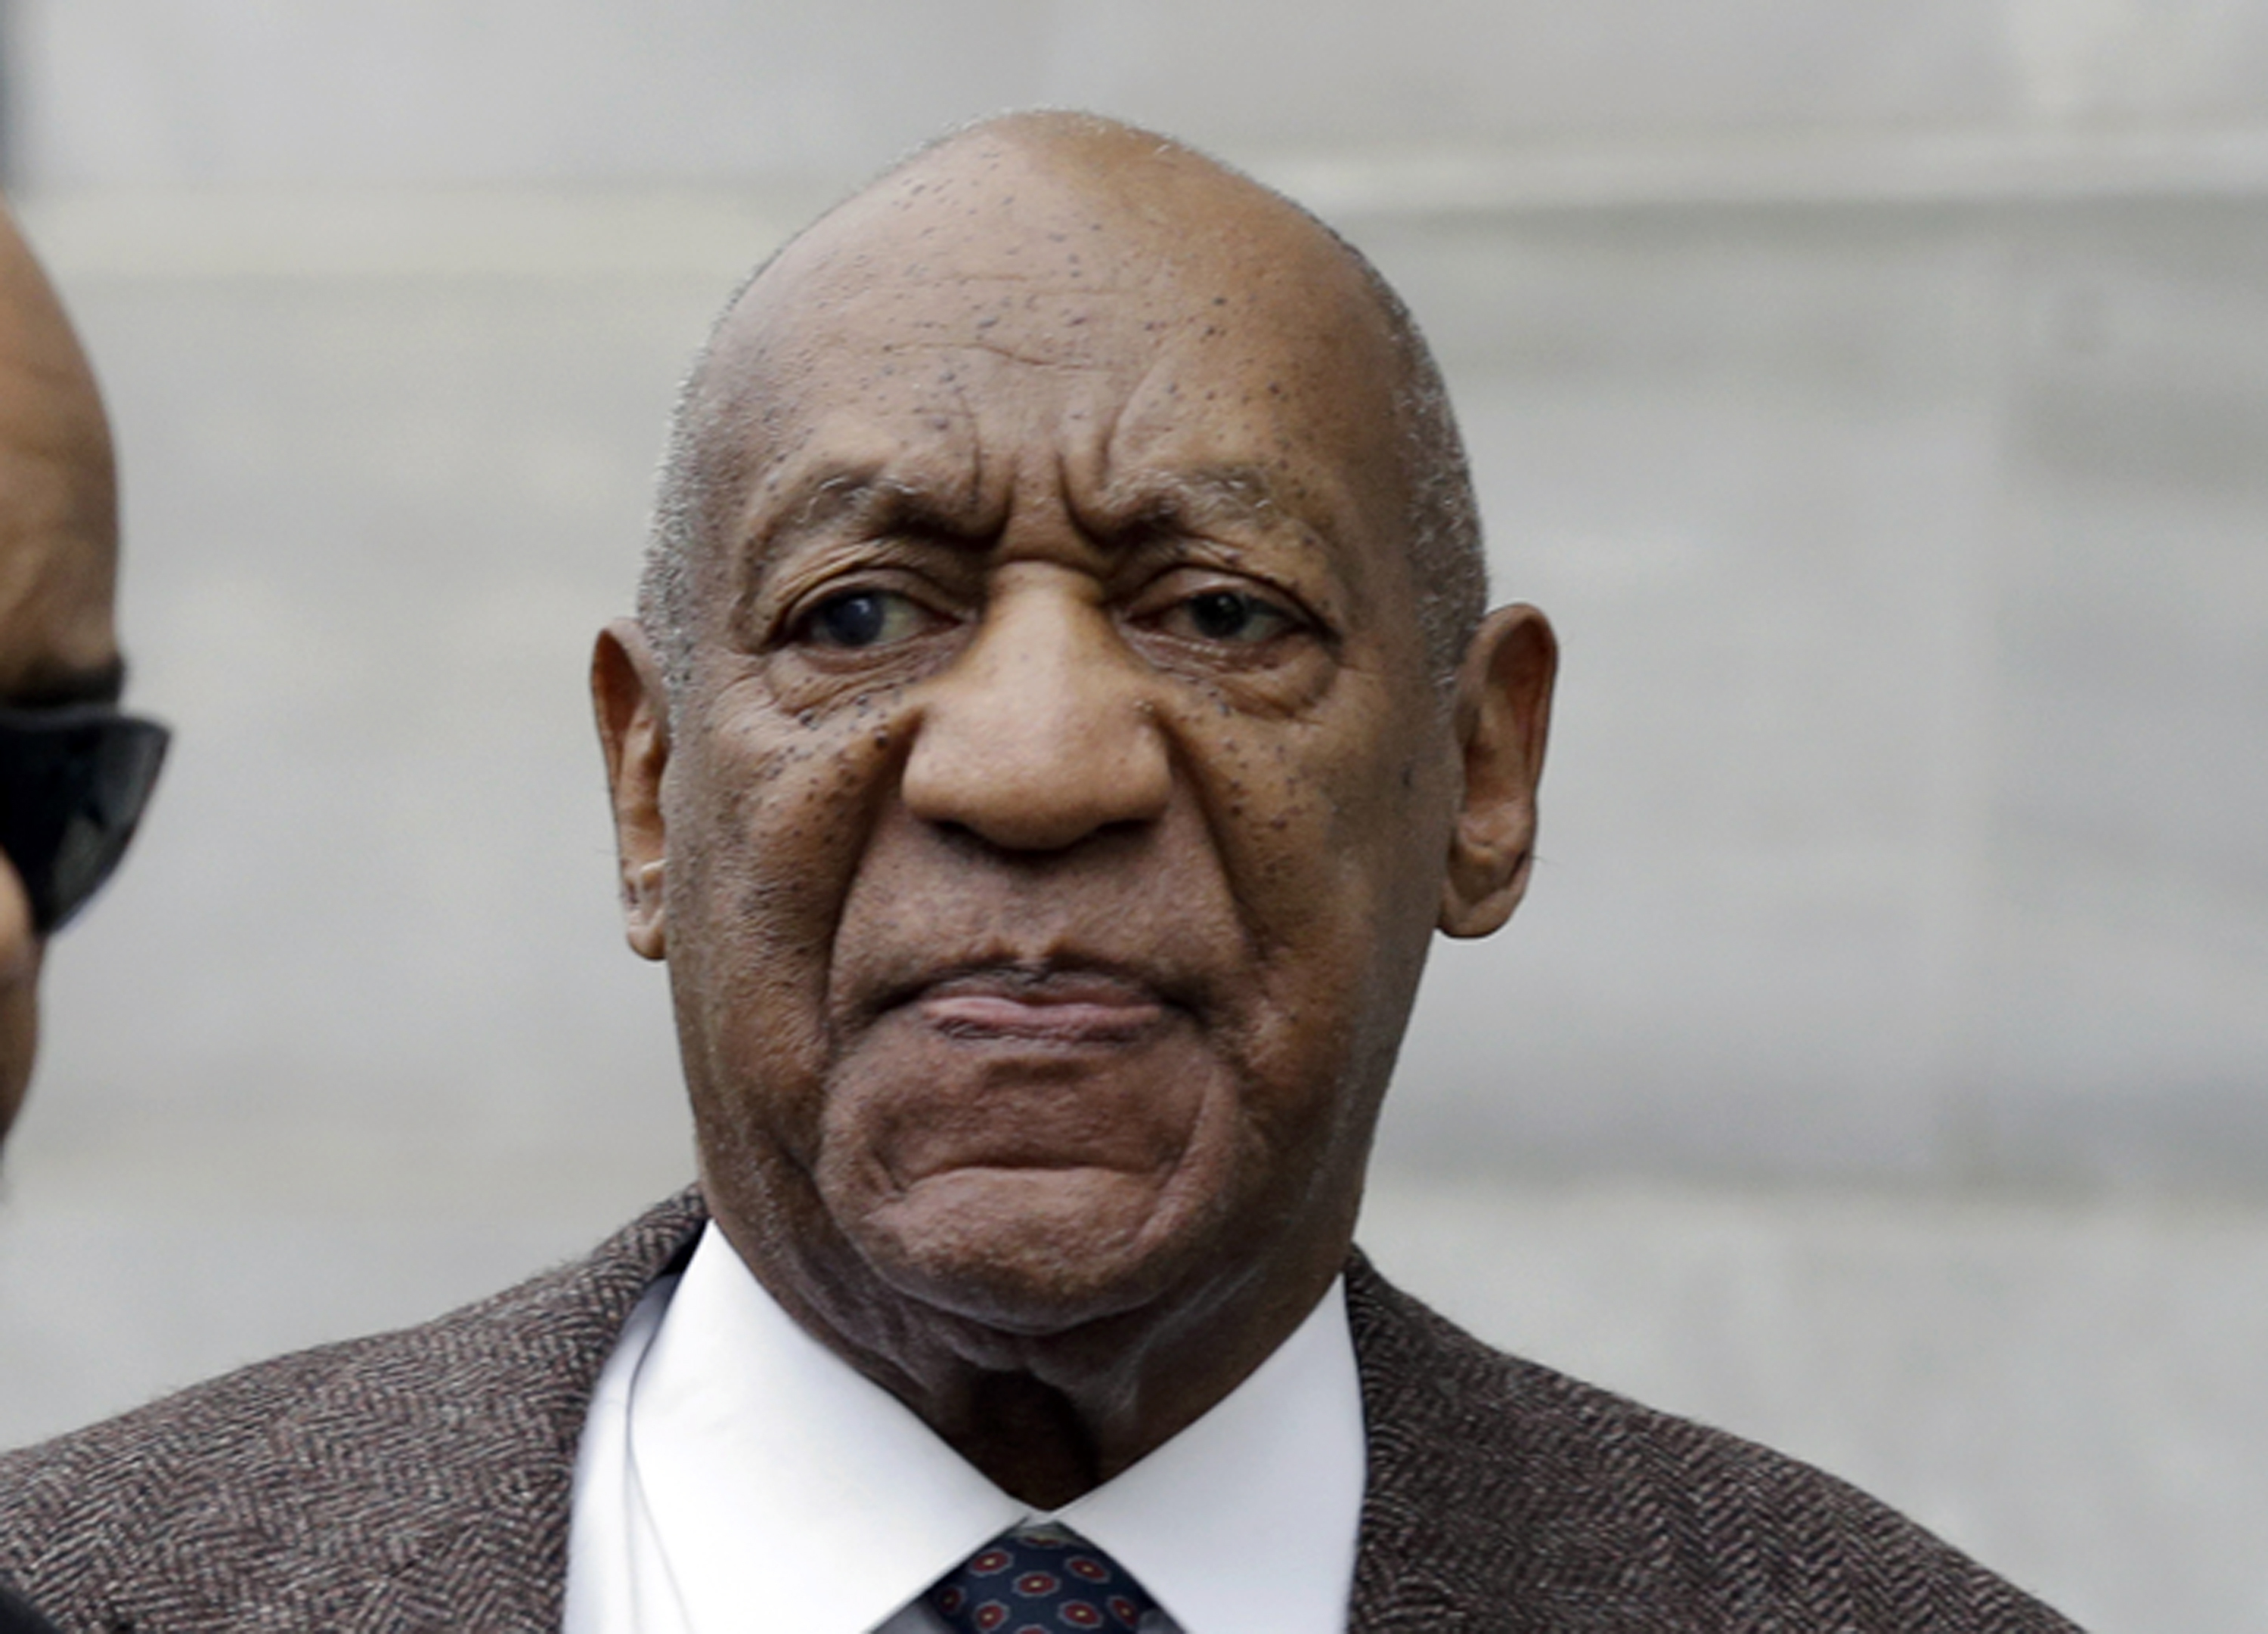 Bill Cosby arrives for a court appearance in Norristown, Pa. on Feb. 3, 2016.